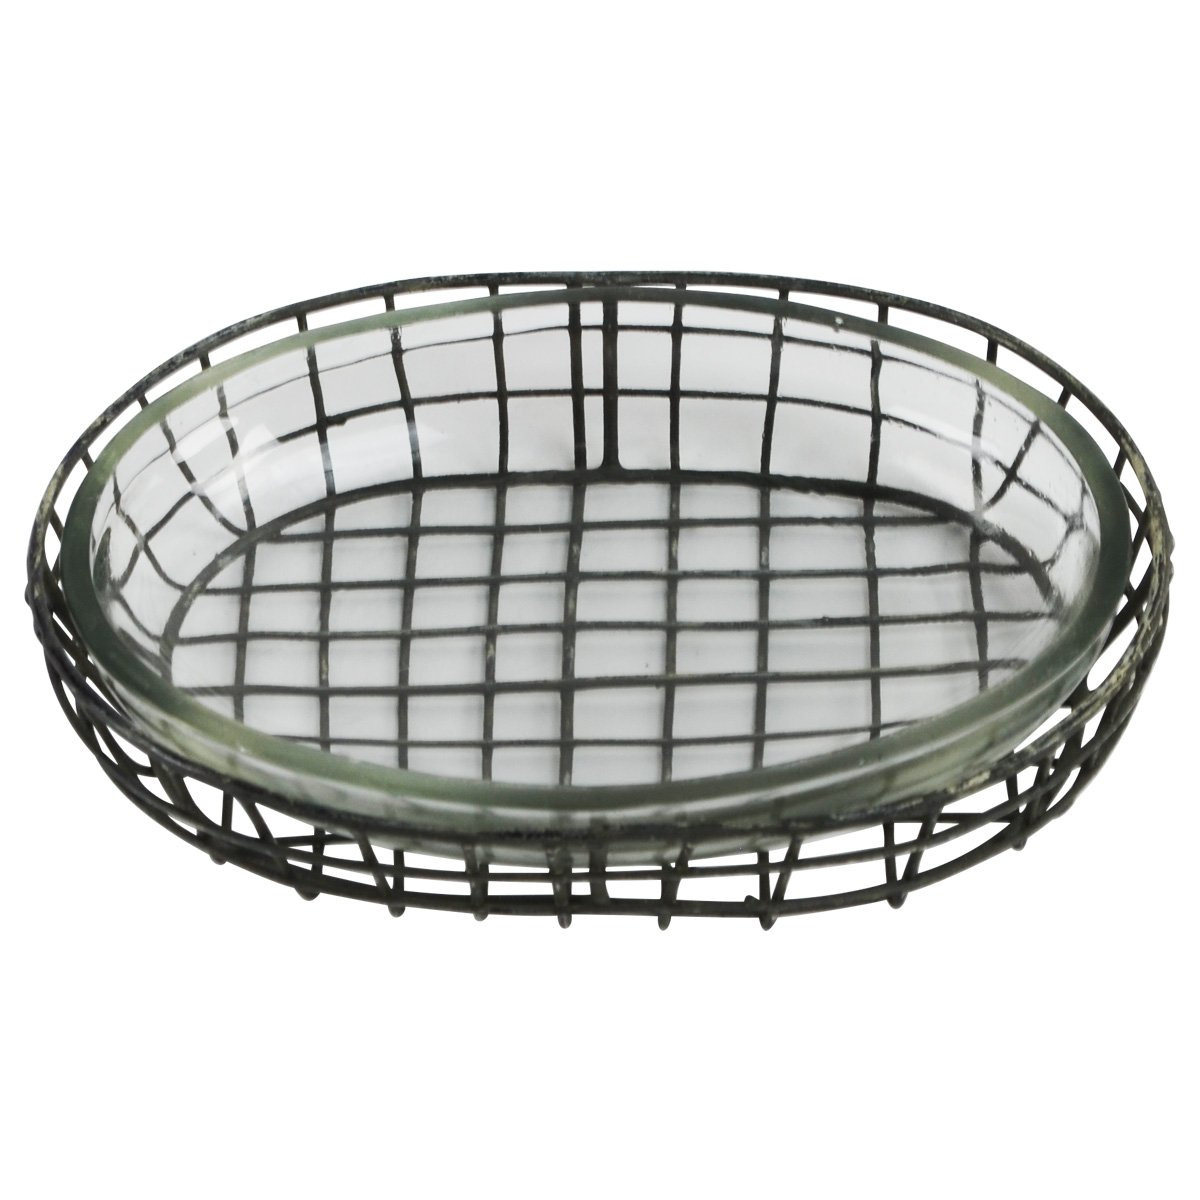 Vintage Style Wire and Glass Soap Dish